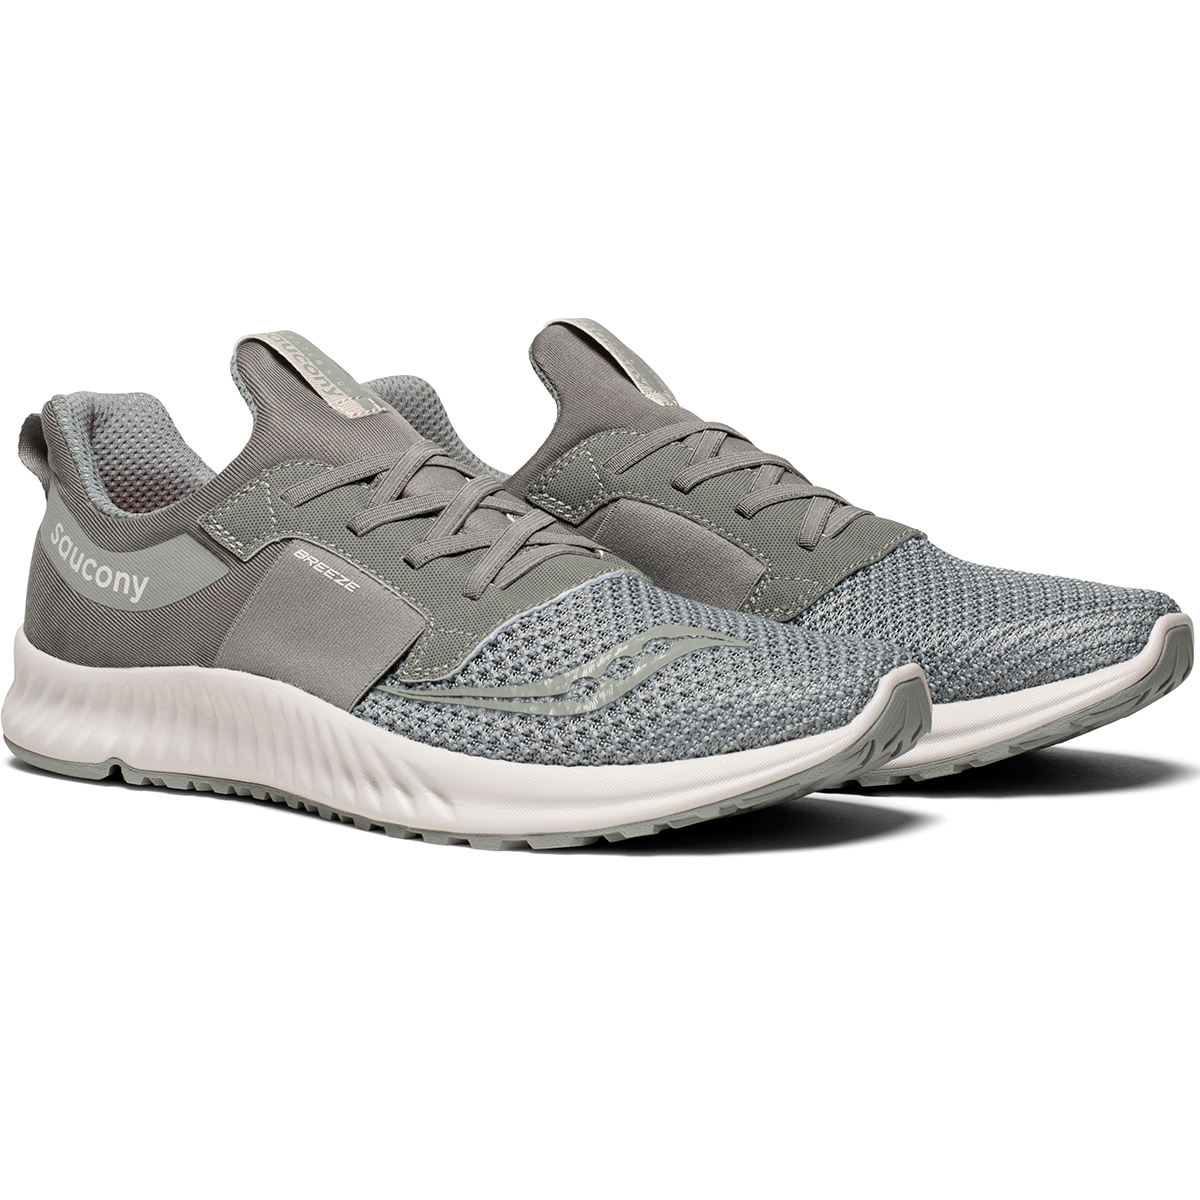 3230eb01 SAUCONY Men's Stretch and Go Breeze Running Shoes - Bob's Stores